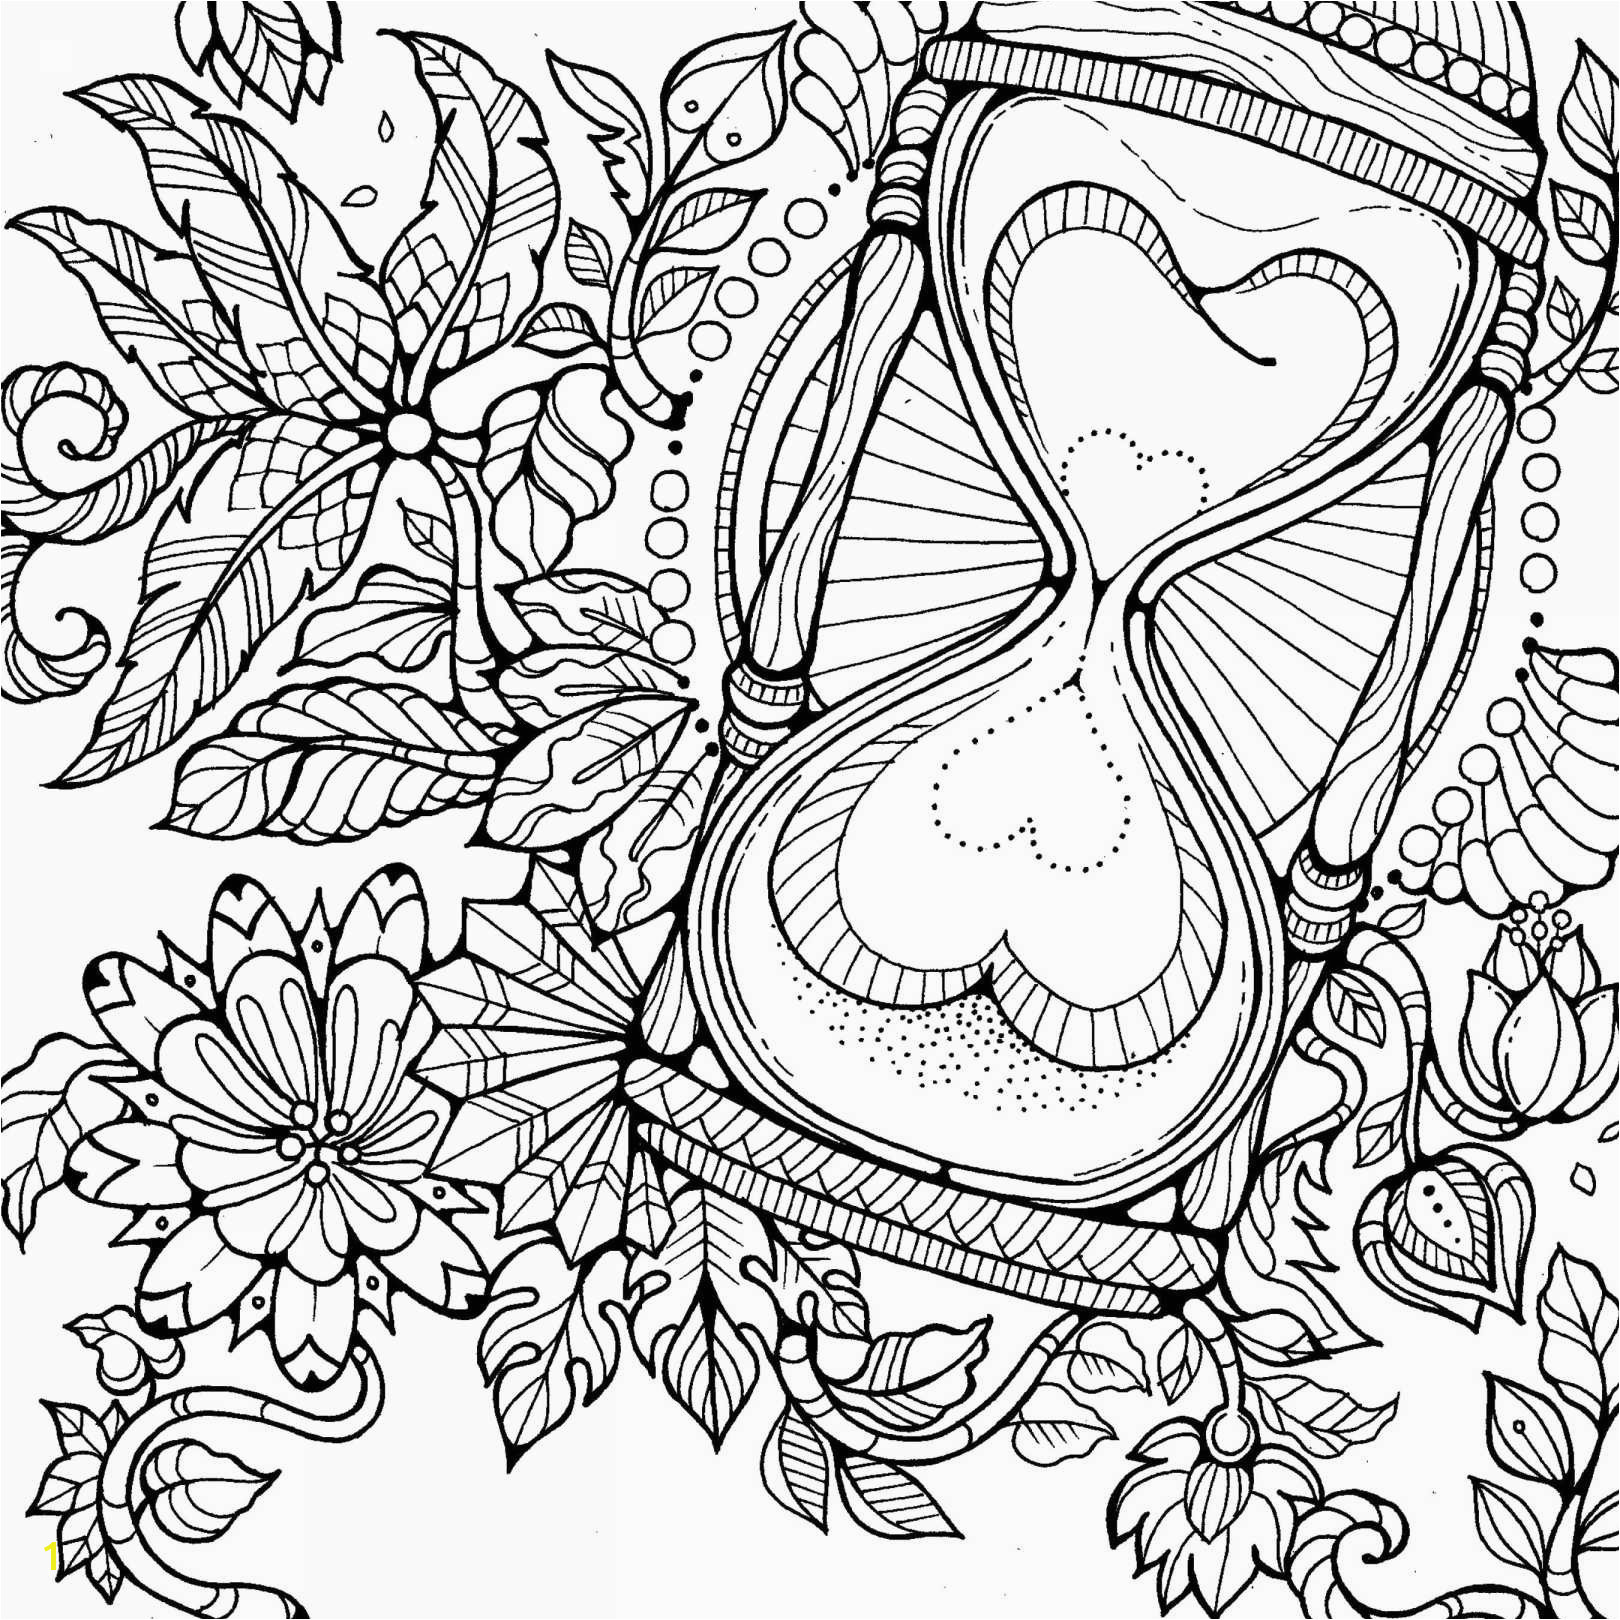 Free Coloring Pages Pdf Unique Christmas Coloring Pages Pdf New Best Od Dog Coloring Pages Free